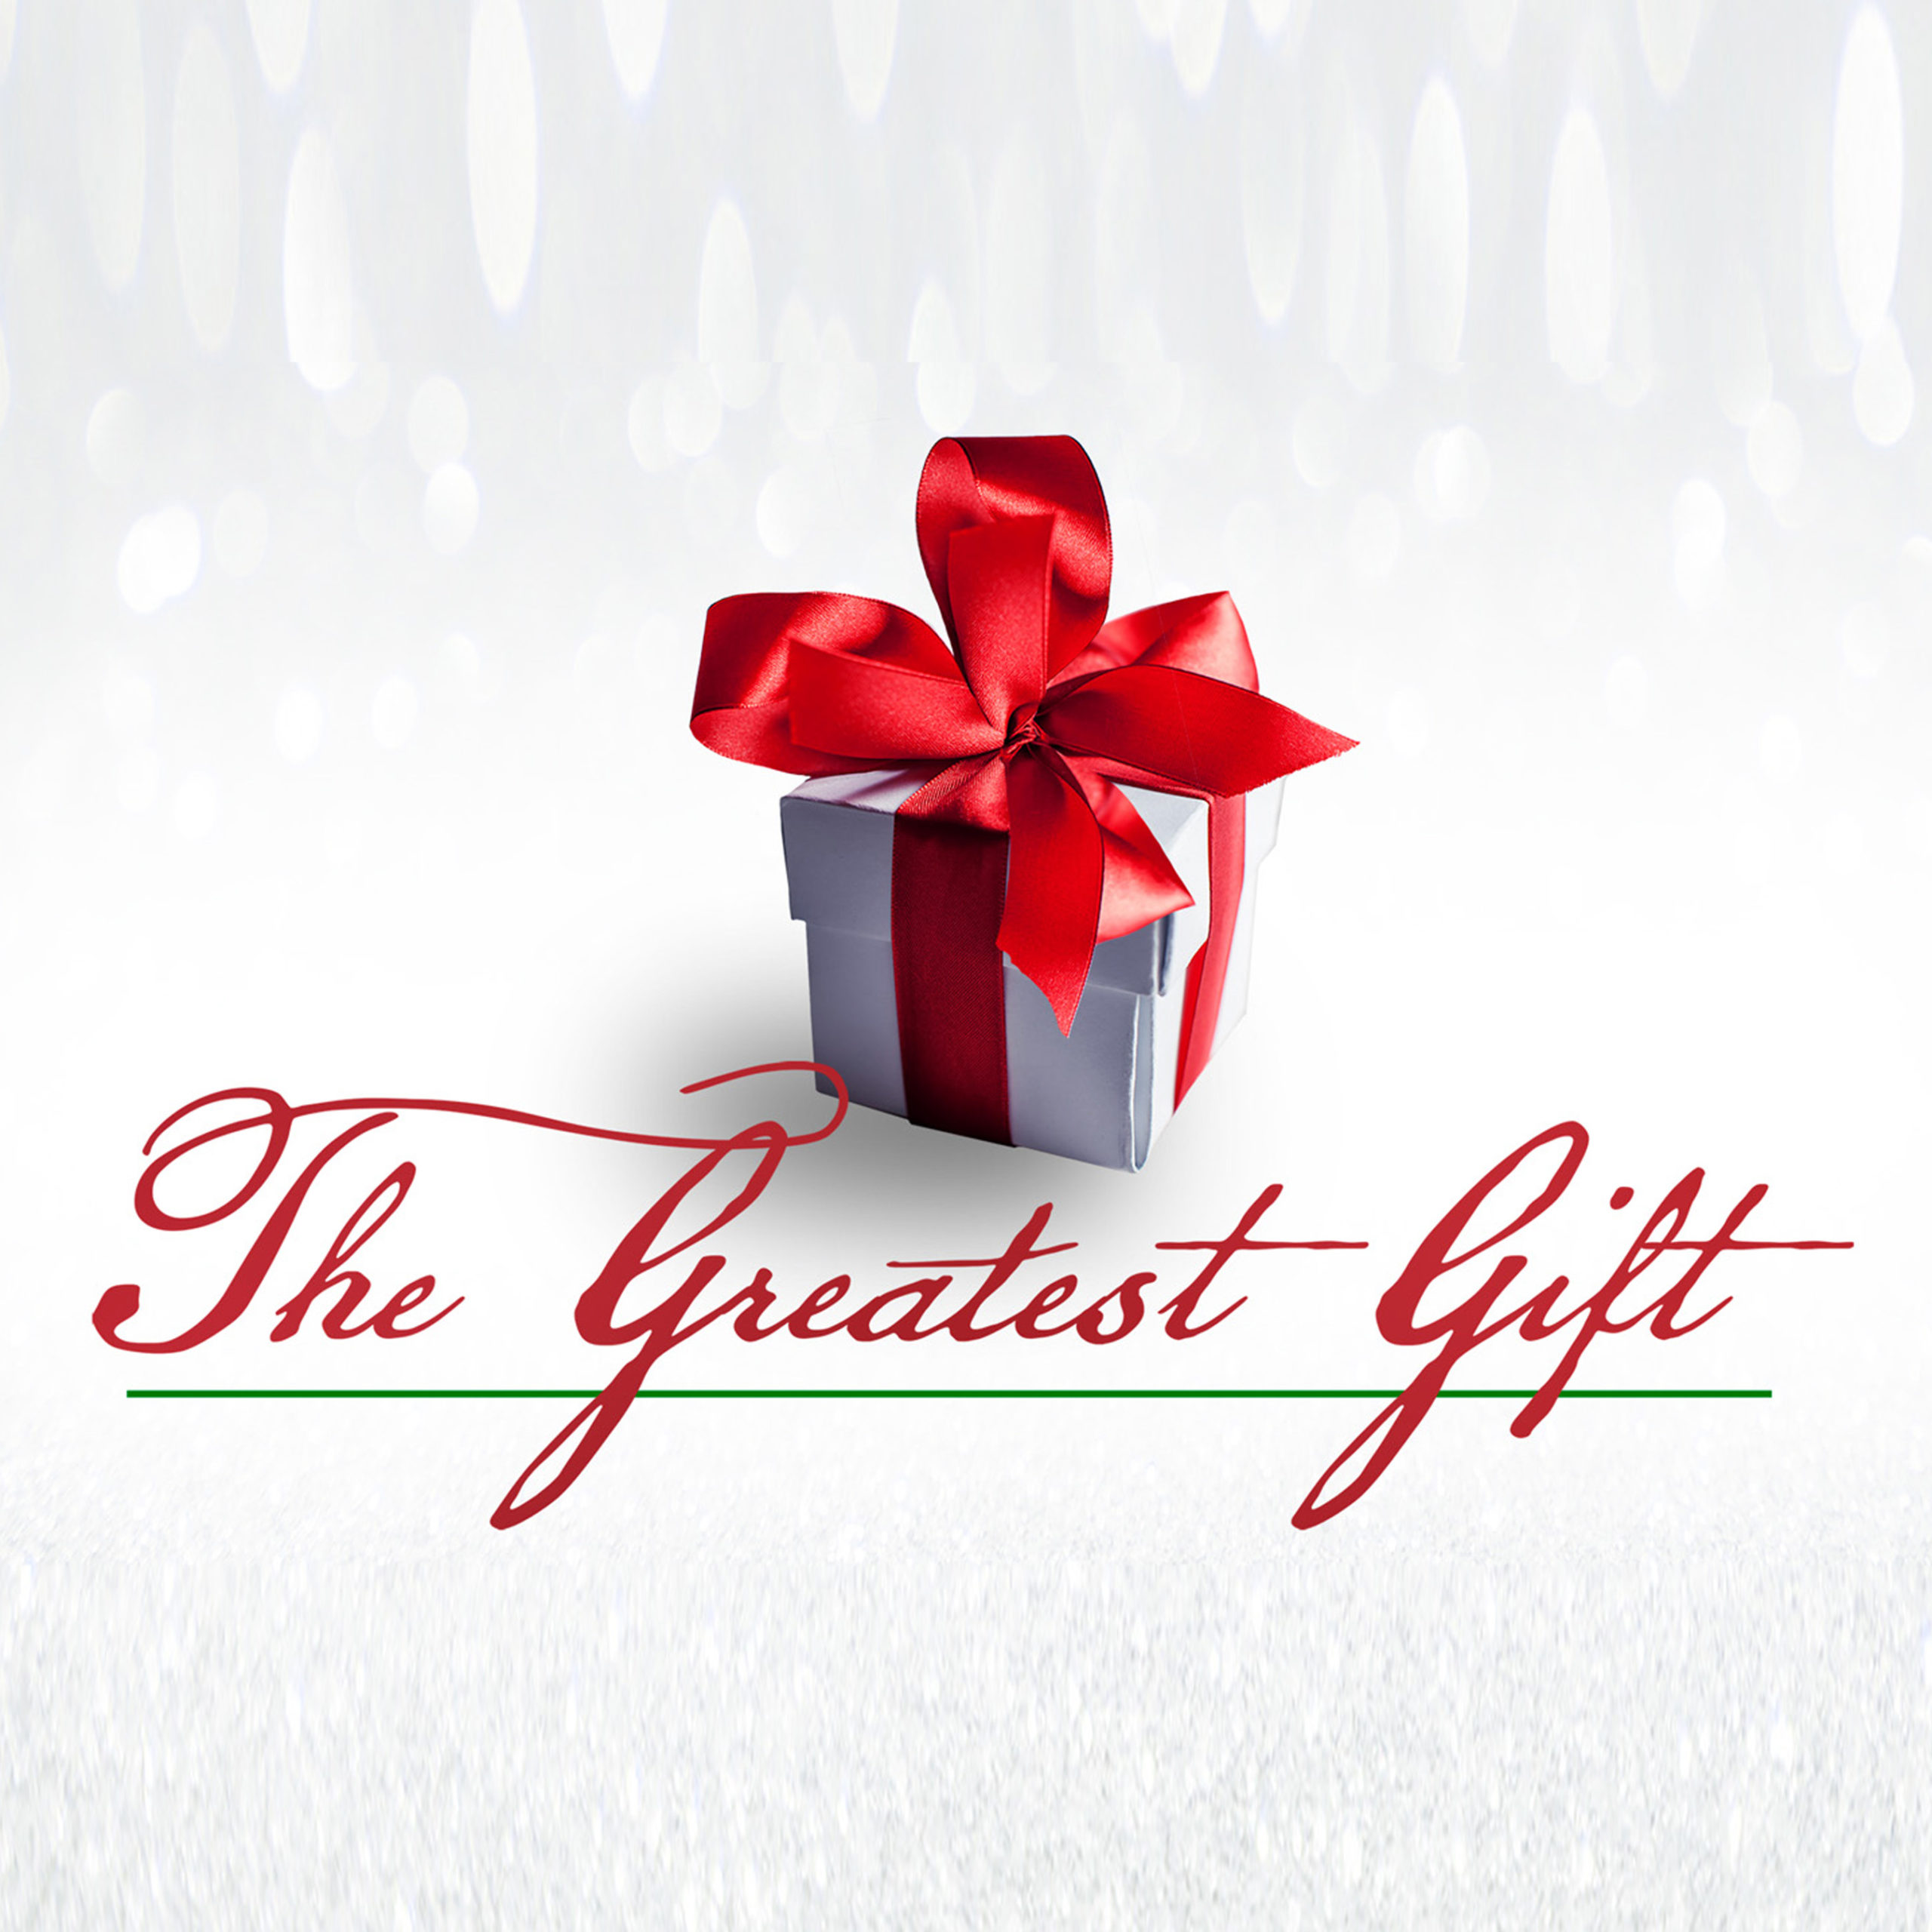 The Greatest Gift Is Free